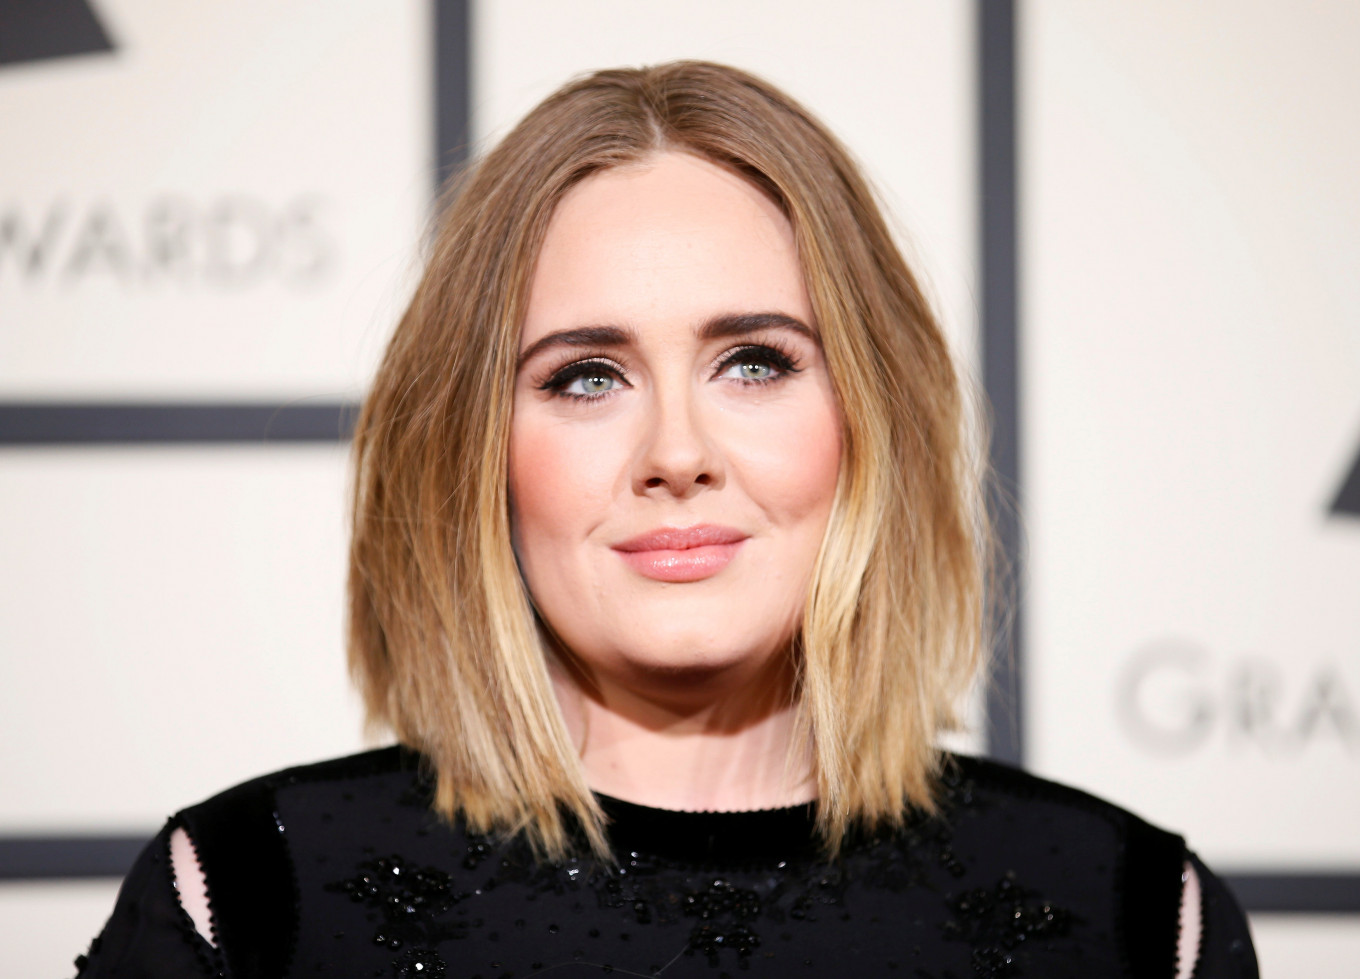 Will there be a new Adele album in September?